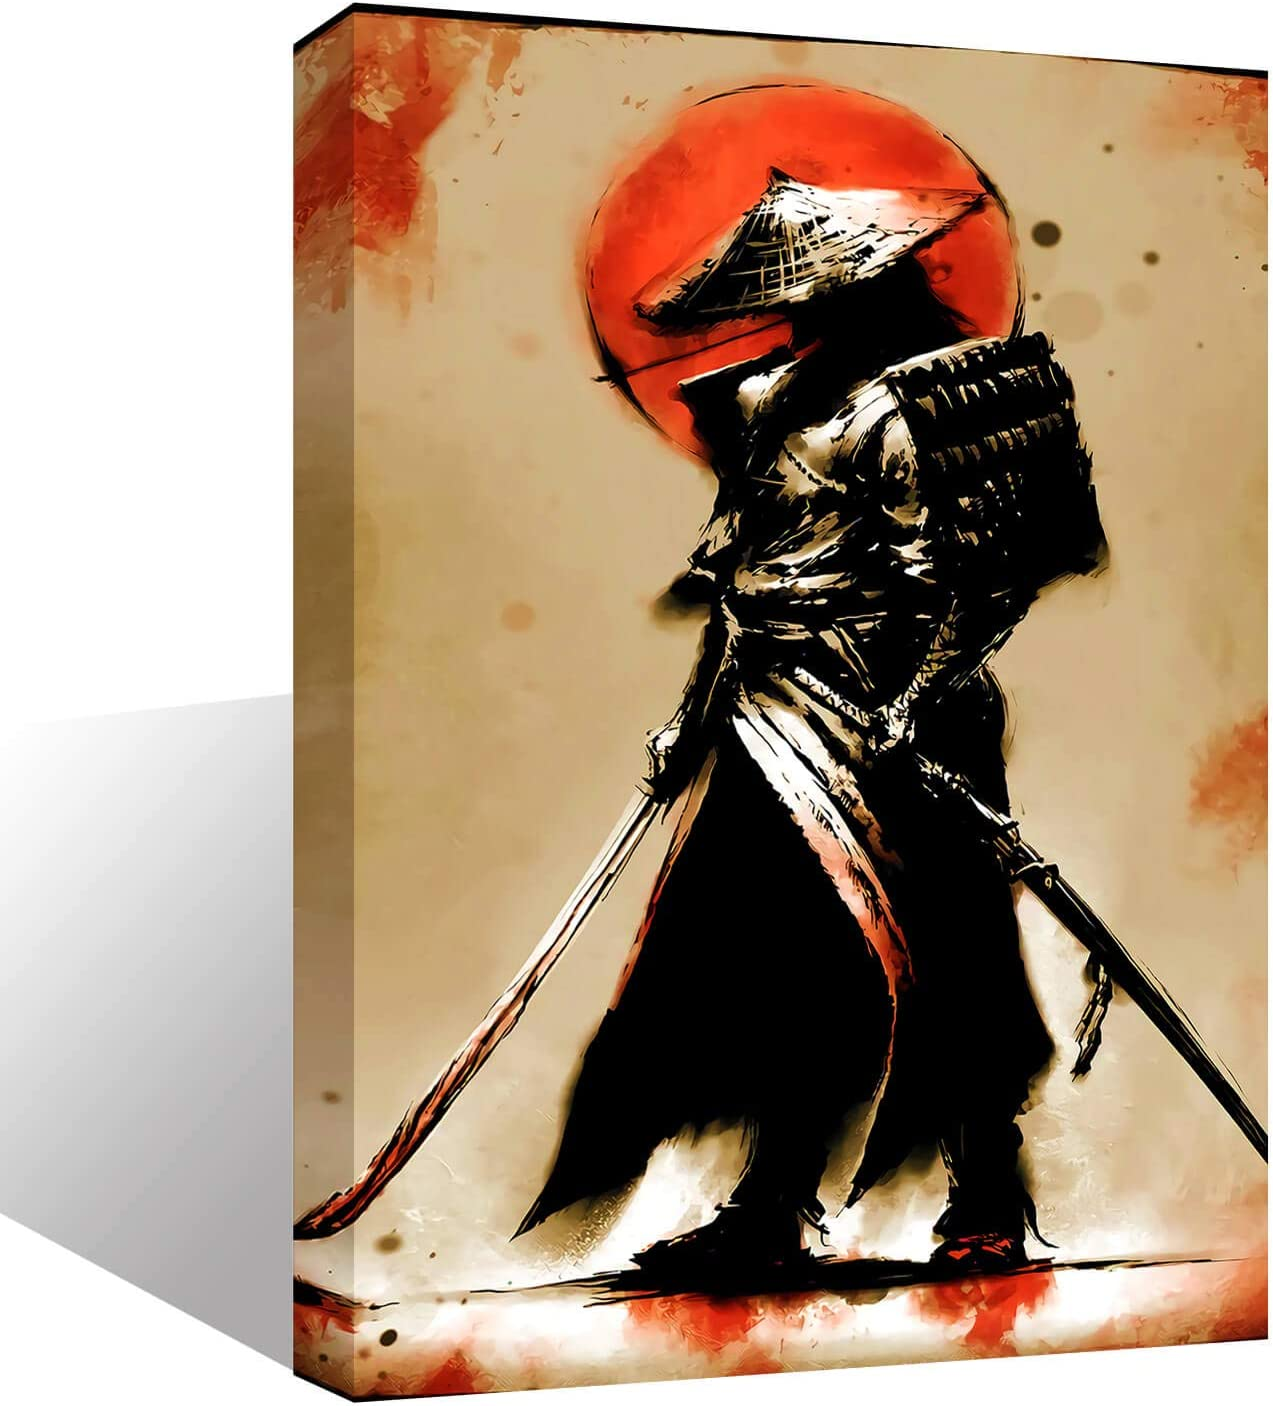 Wall Art Inner-Framed Canvas Prints for Living Room Bedroom and Home Decorations HD Print Painting for Home Decor Ready to Hang - Samurai Warrior#3